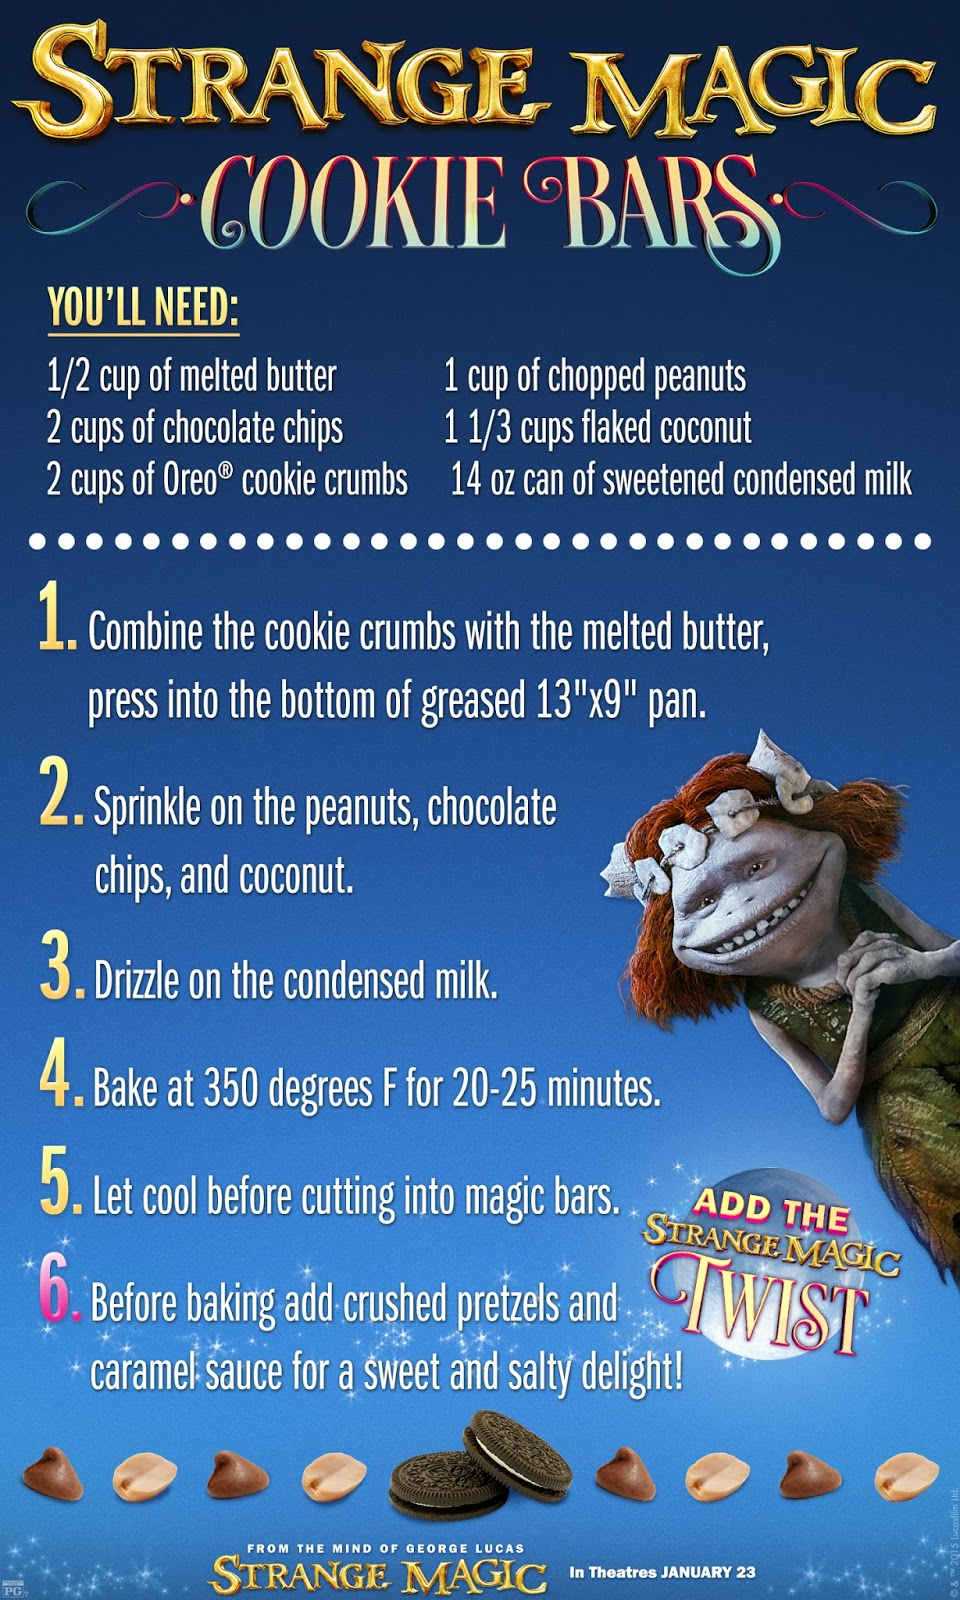 """Strange Magic"" Cookie Bars Recipe Card Focused on the Magic Foodie Friday"